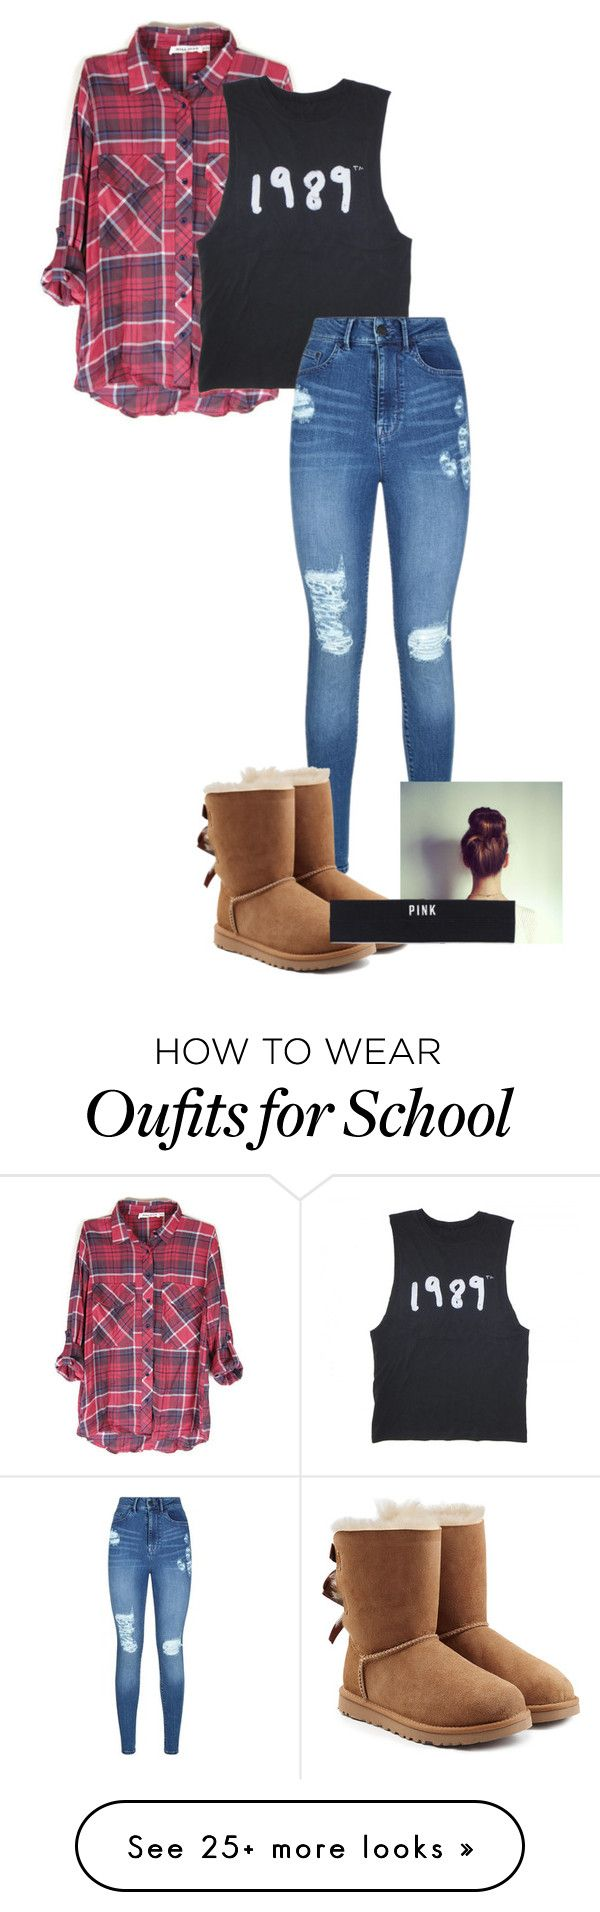 """School"" by cassidycraig1 on Polyvore featuring Lipsy, UGG Australia and Victoria's Secret PINK"